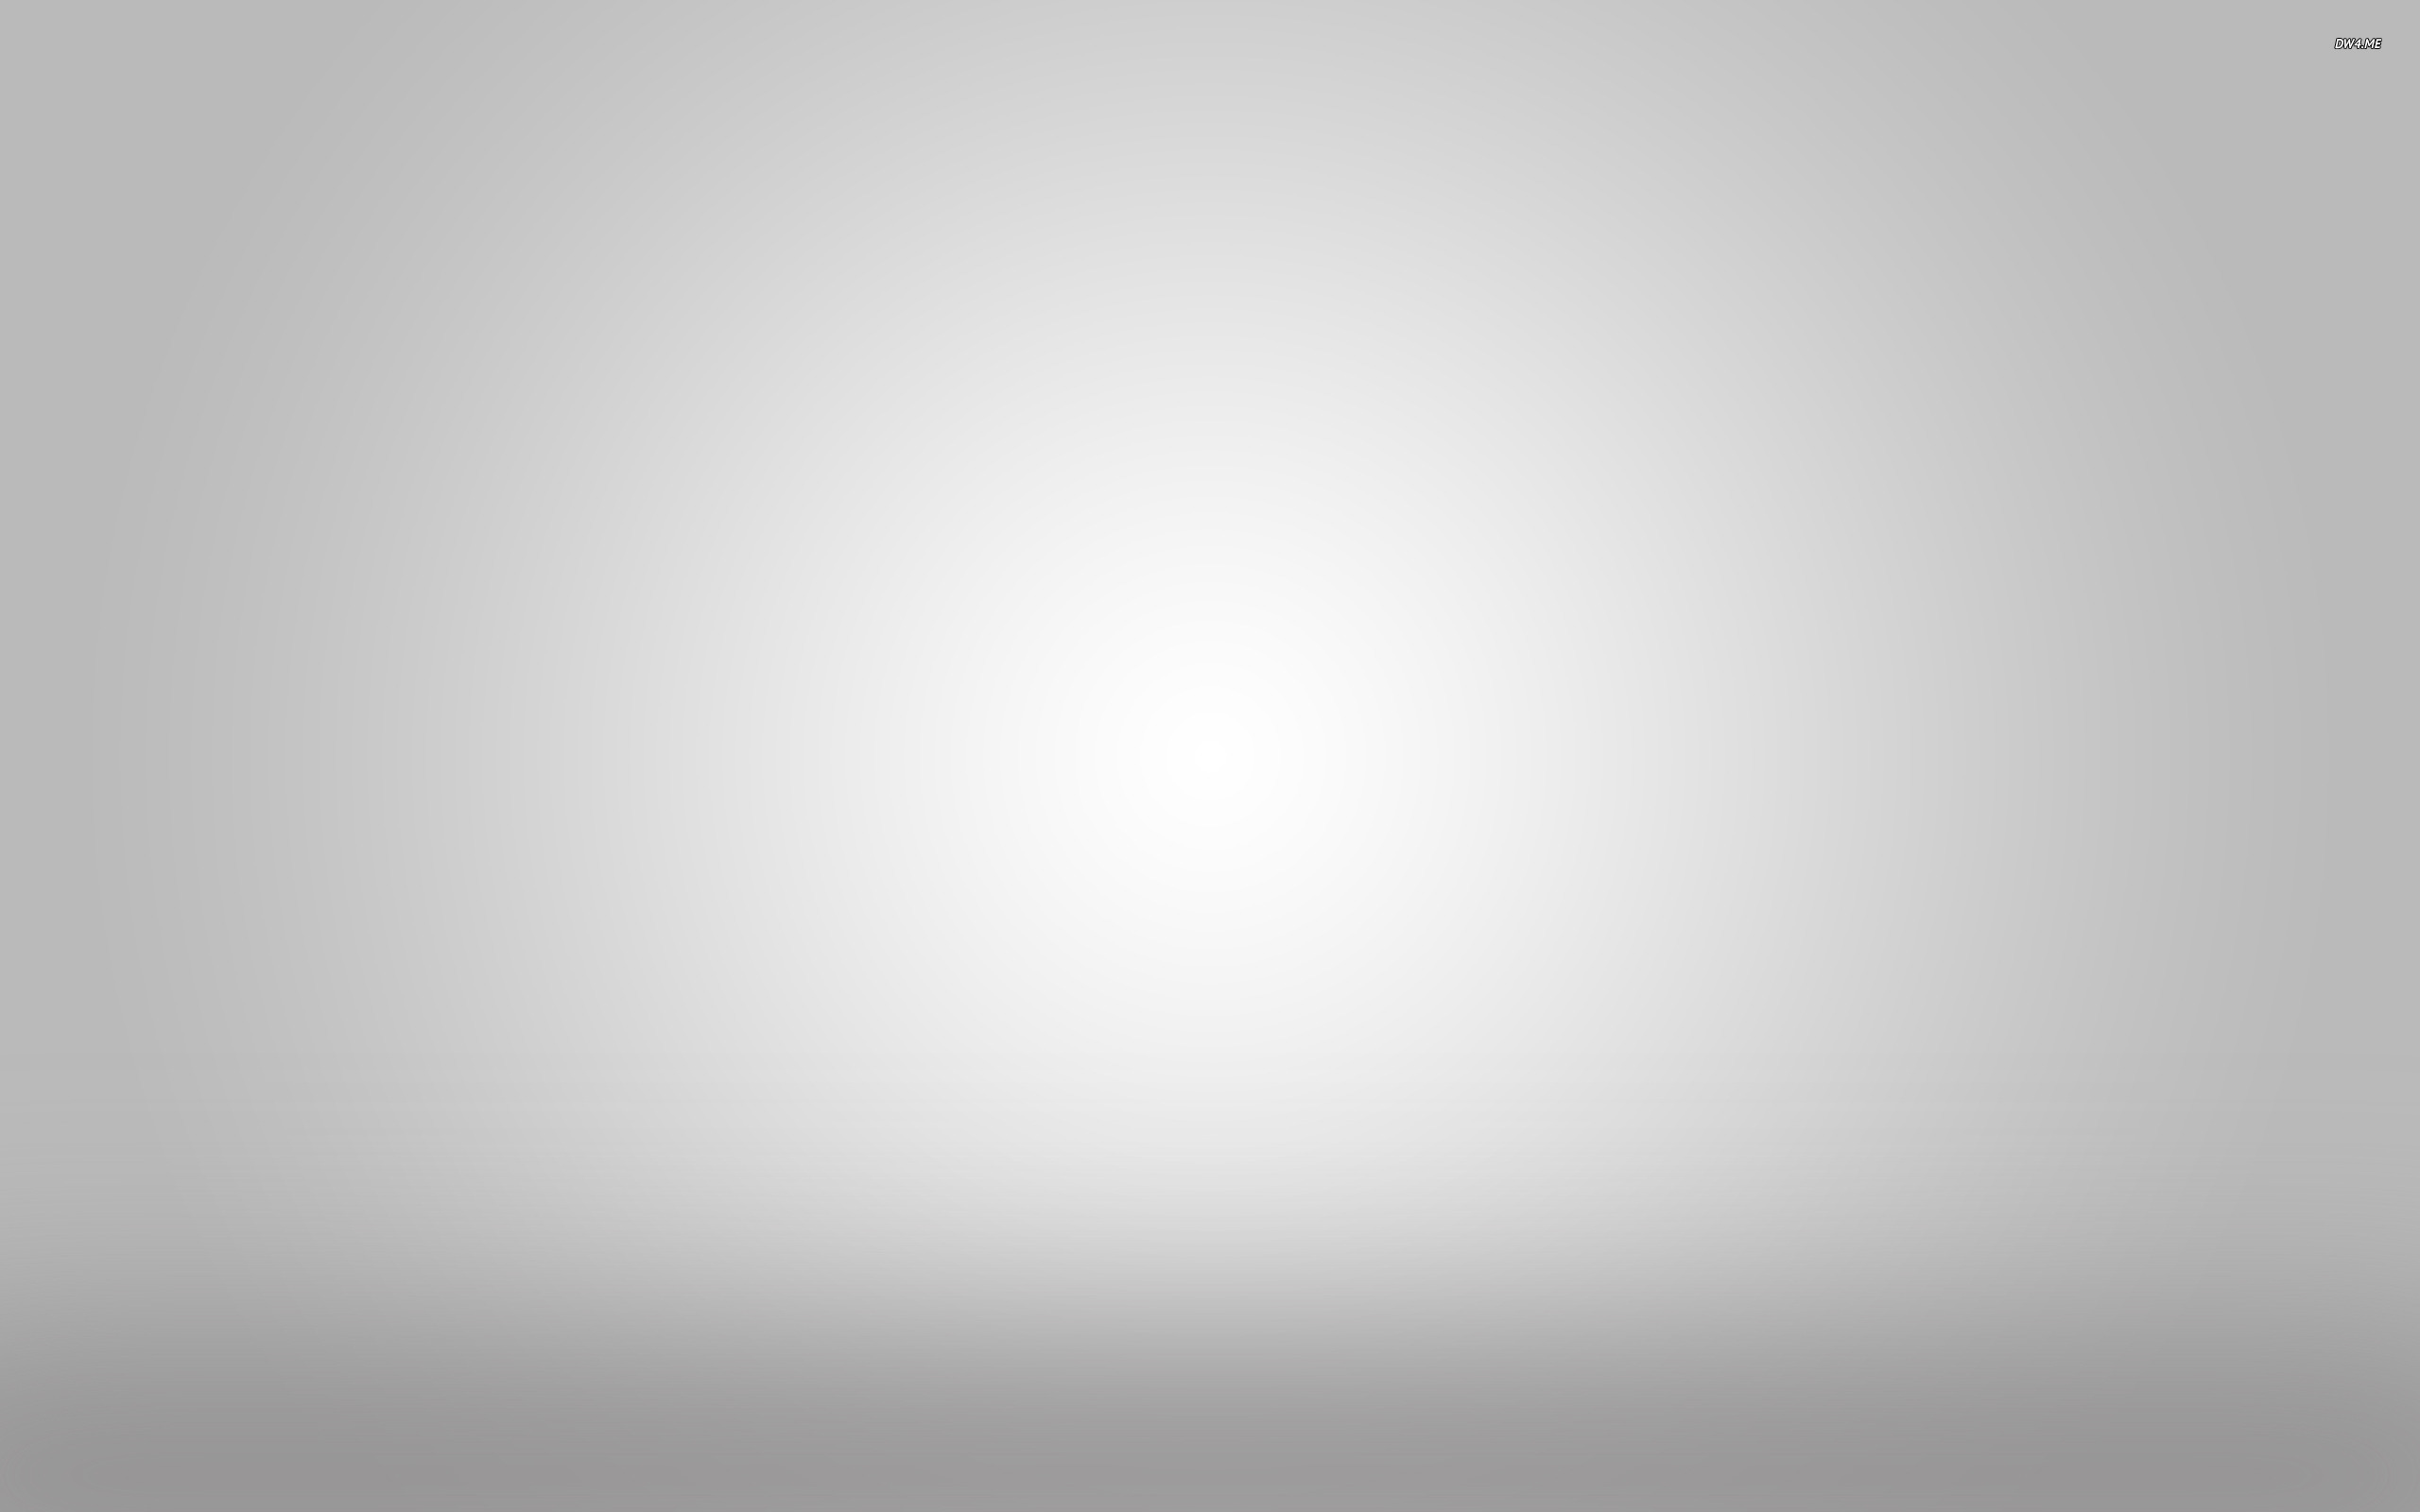 ... Light gray gradient wallpaper 2560x1600 ...